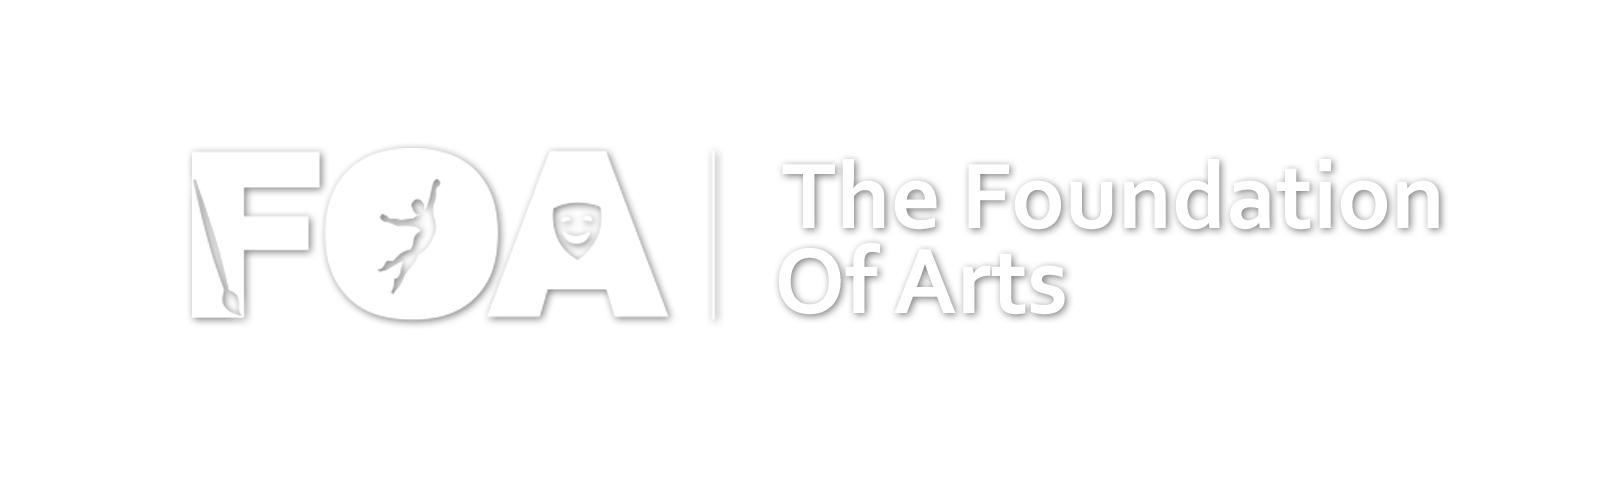 The Foundation of Arts